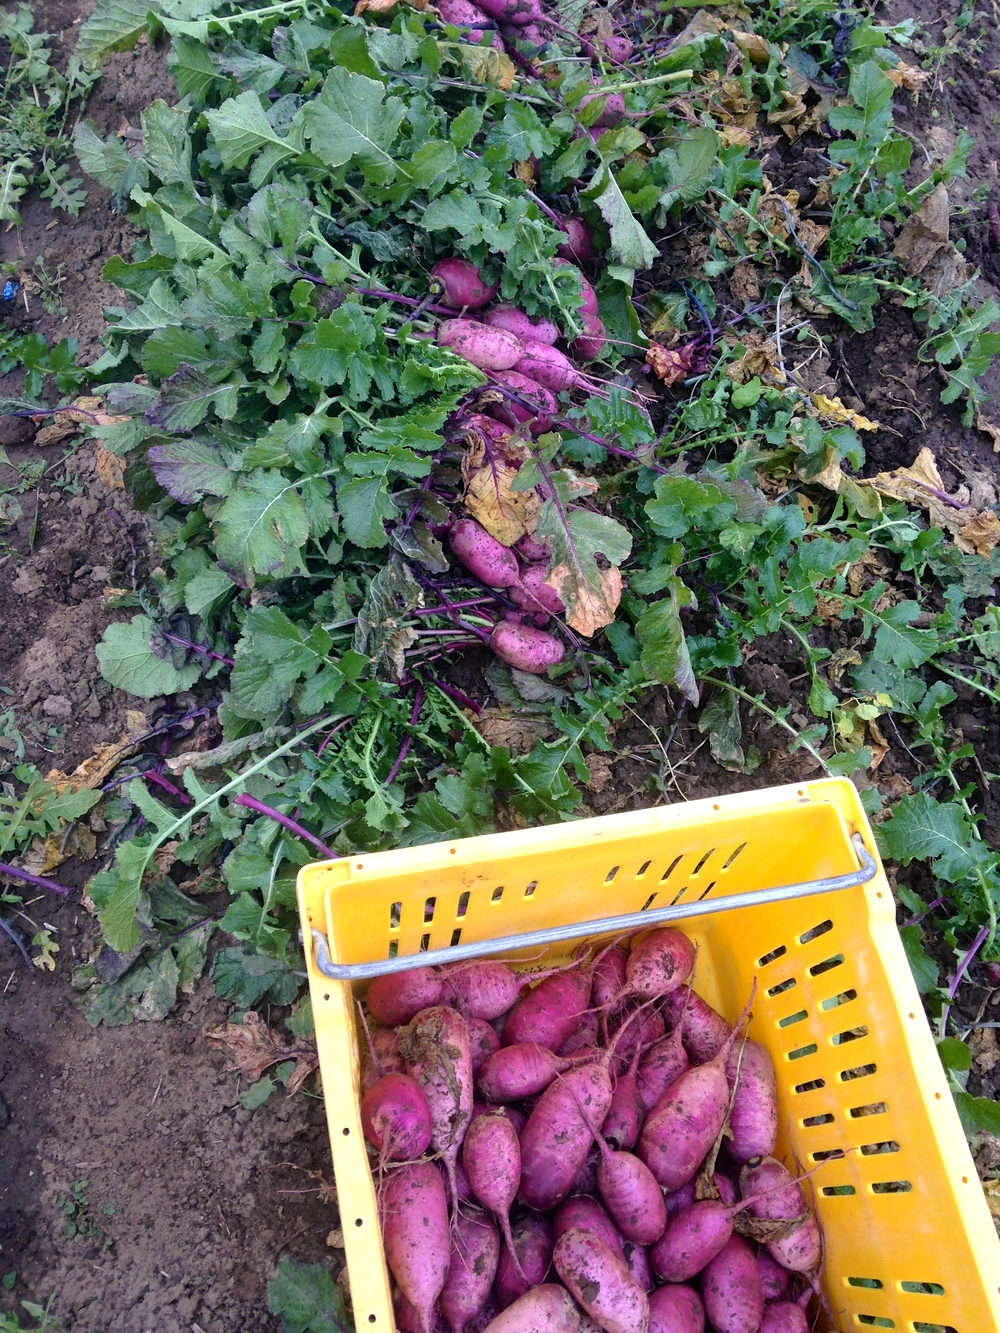 Harvesting Purple Daikon